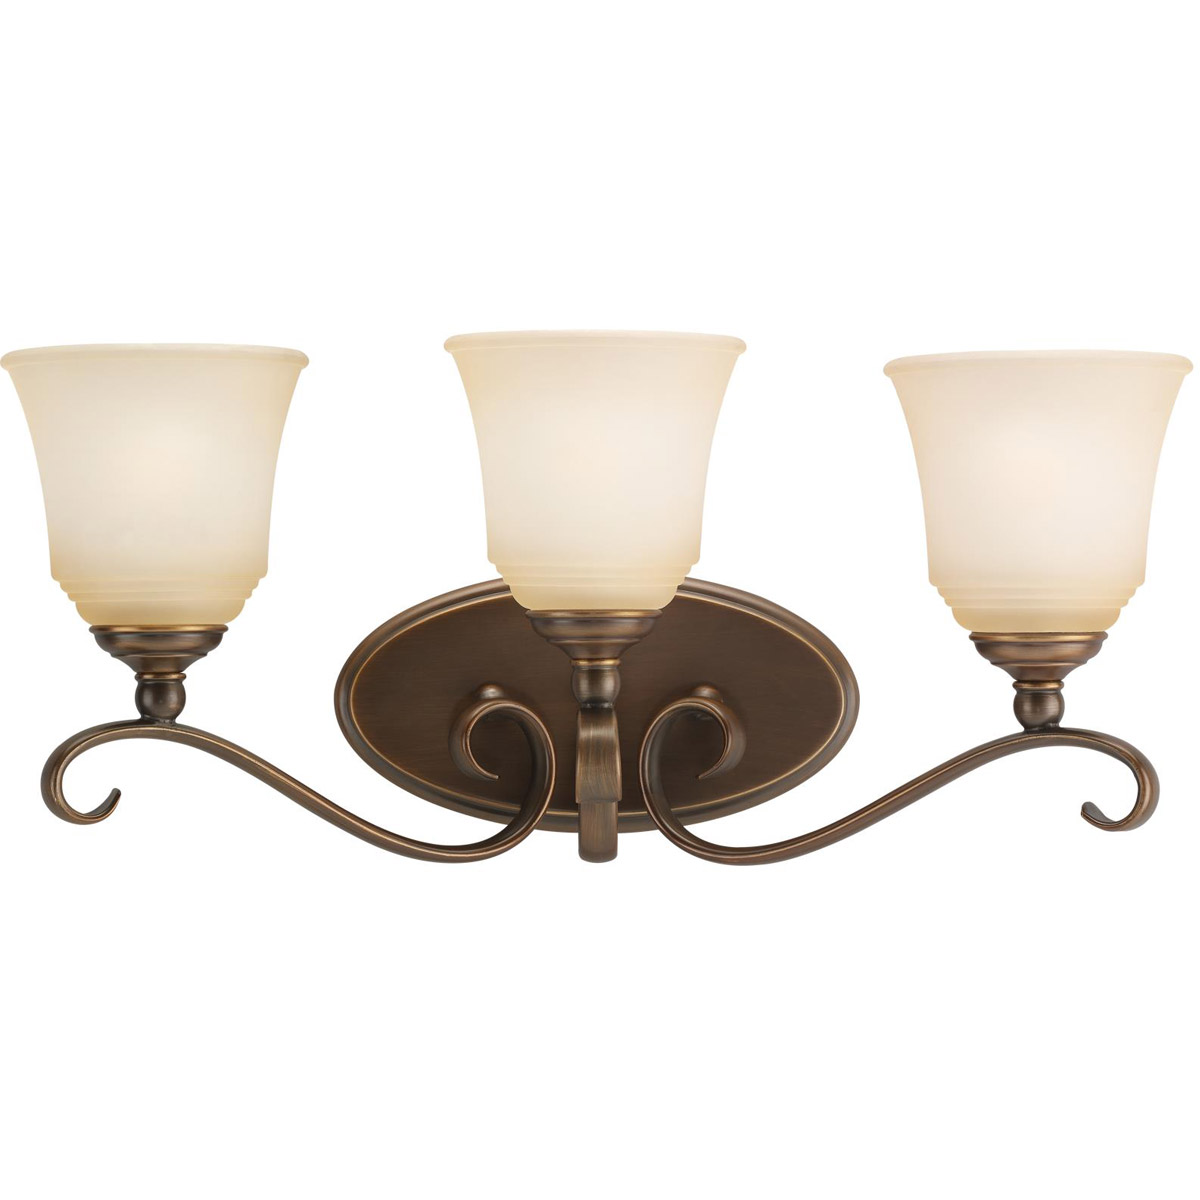 Sea Gull Lighting Parkview 3 Light Bath Vanity in Russet Bronze 44381-829 photo